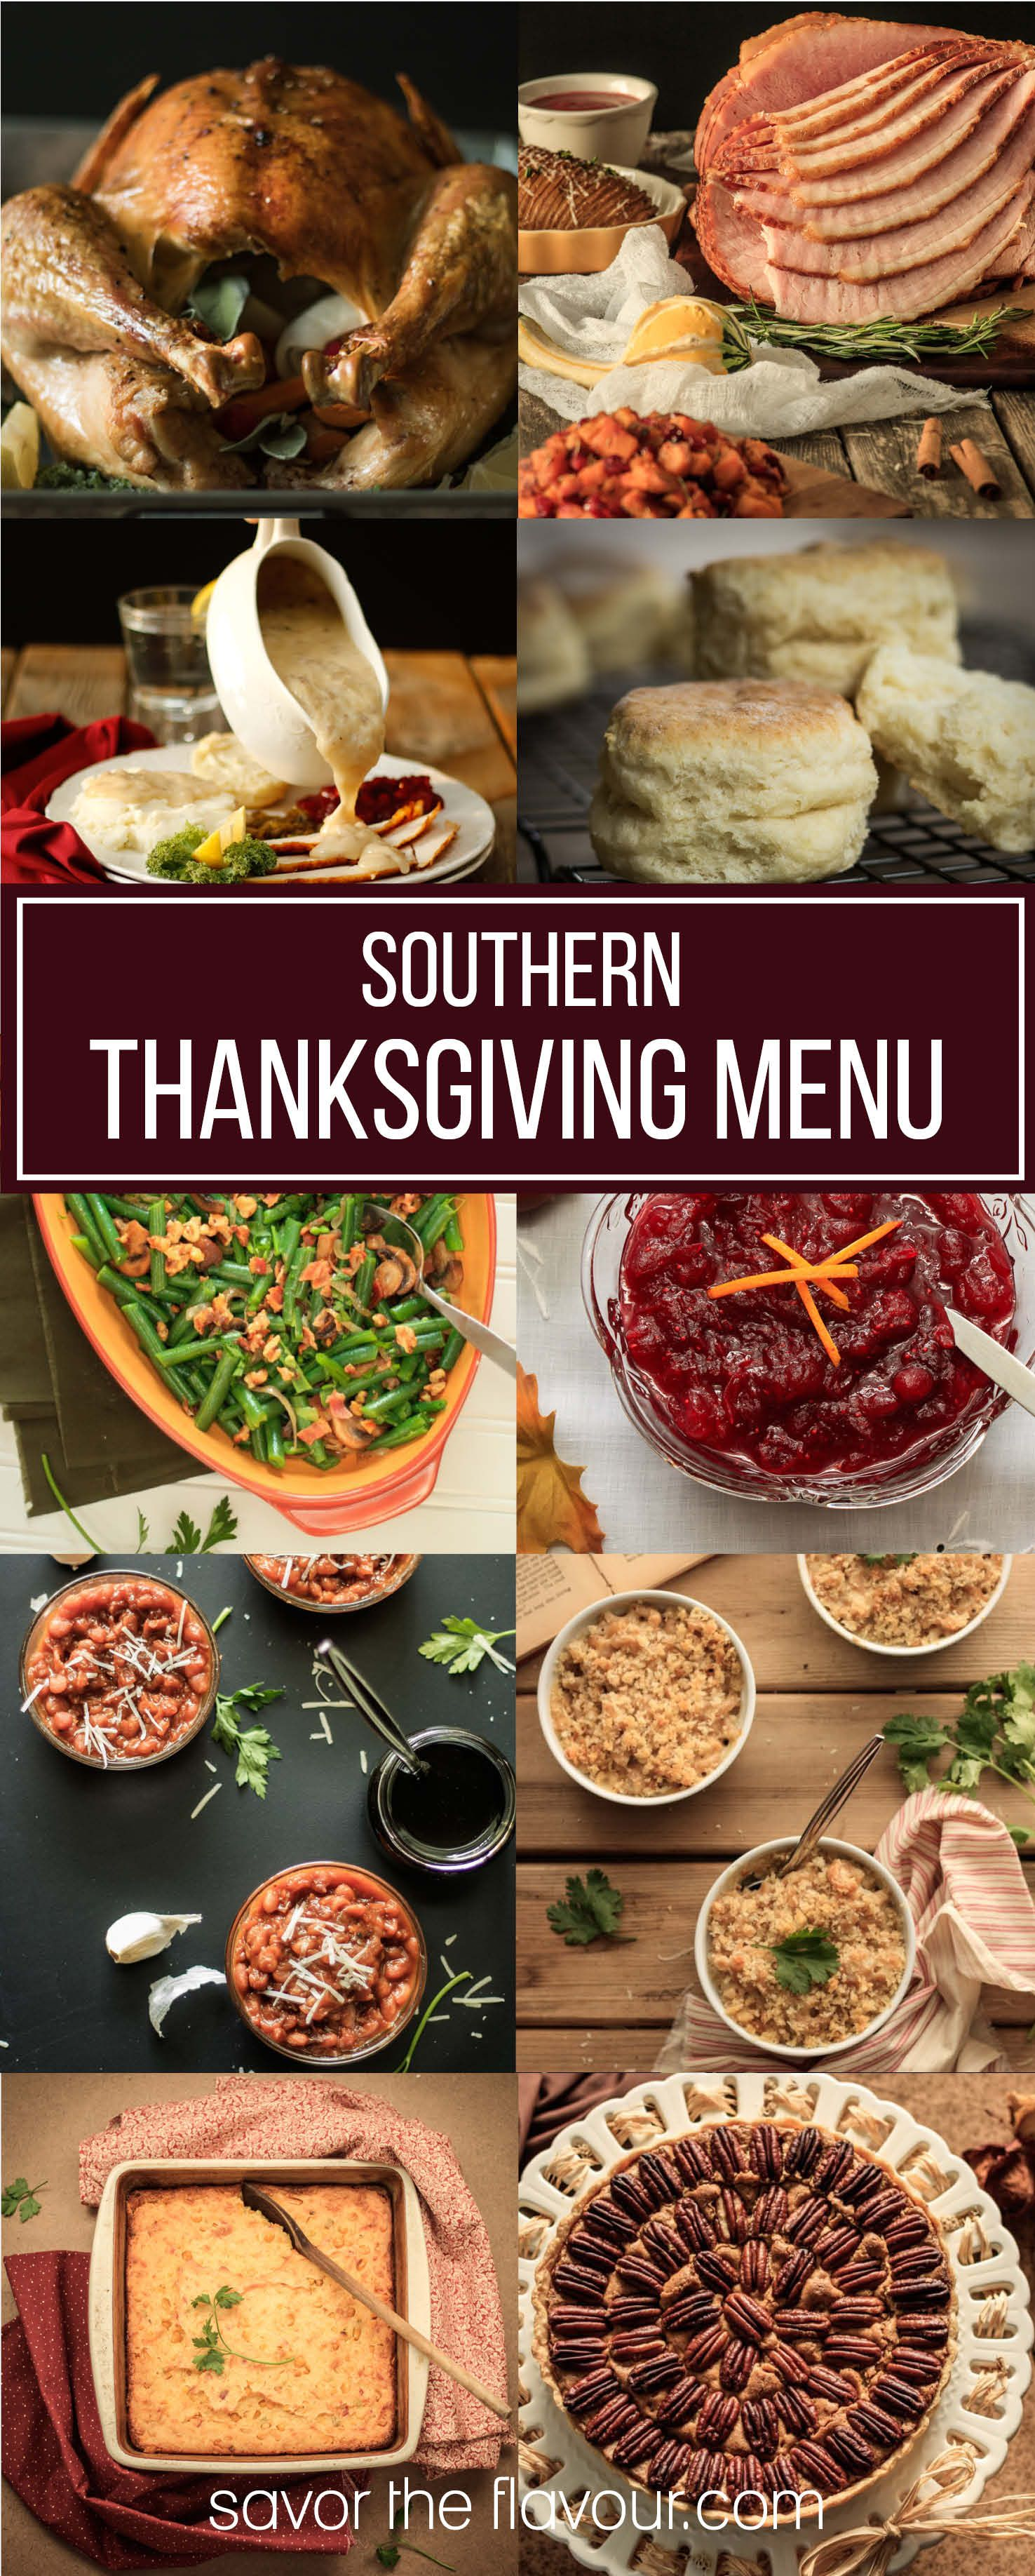 Are You Craving A Southern Georgia Thanksgiving Dinner Heres Some Cl Ic Easy Recipes For Main Course Sides And Dessert From Savor The Flavour